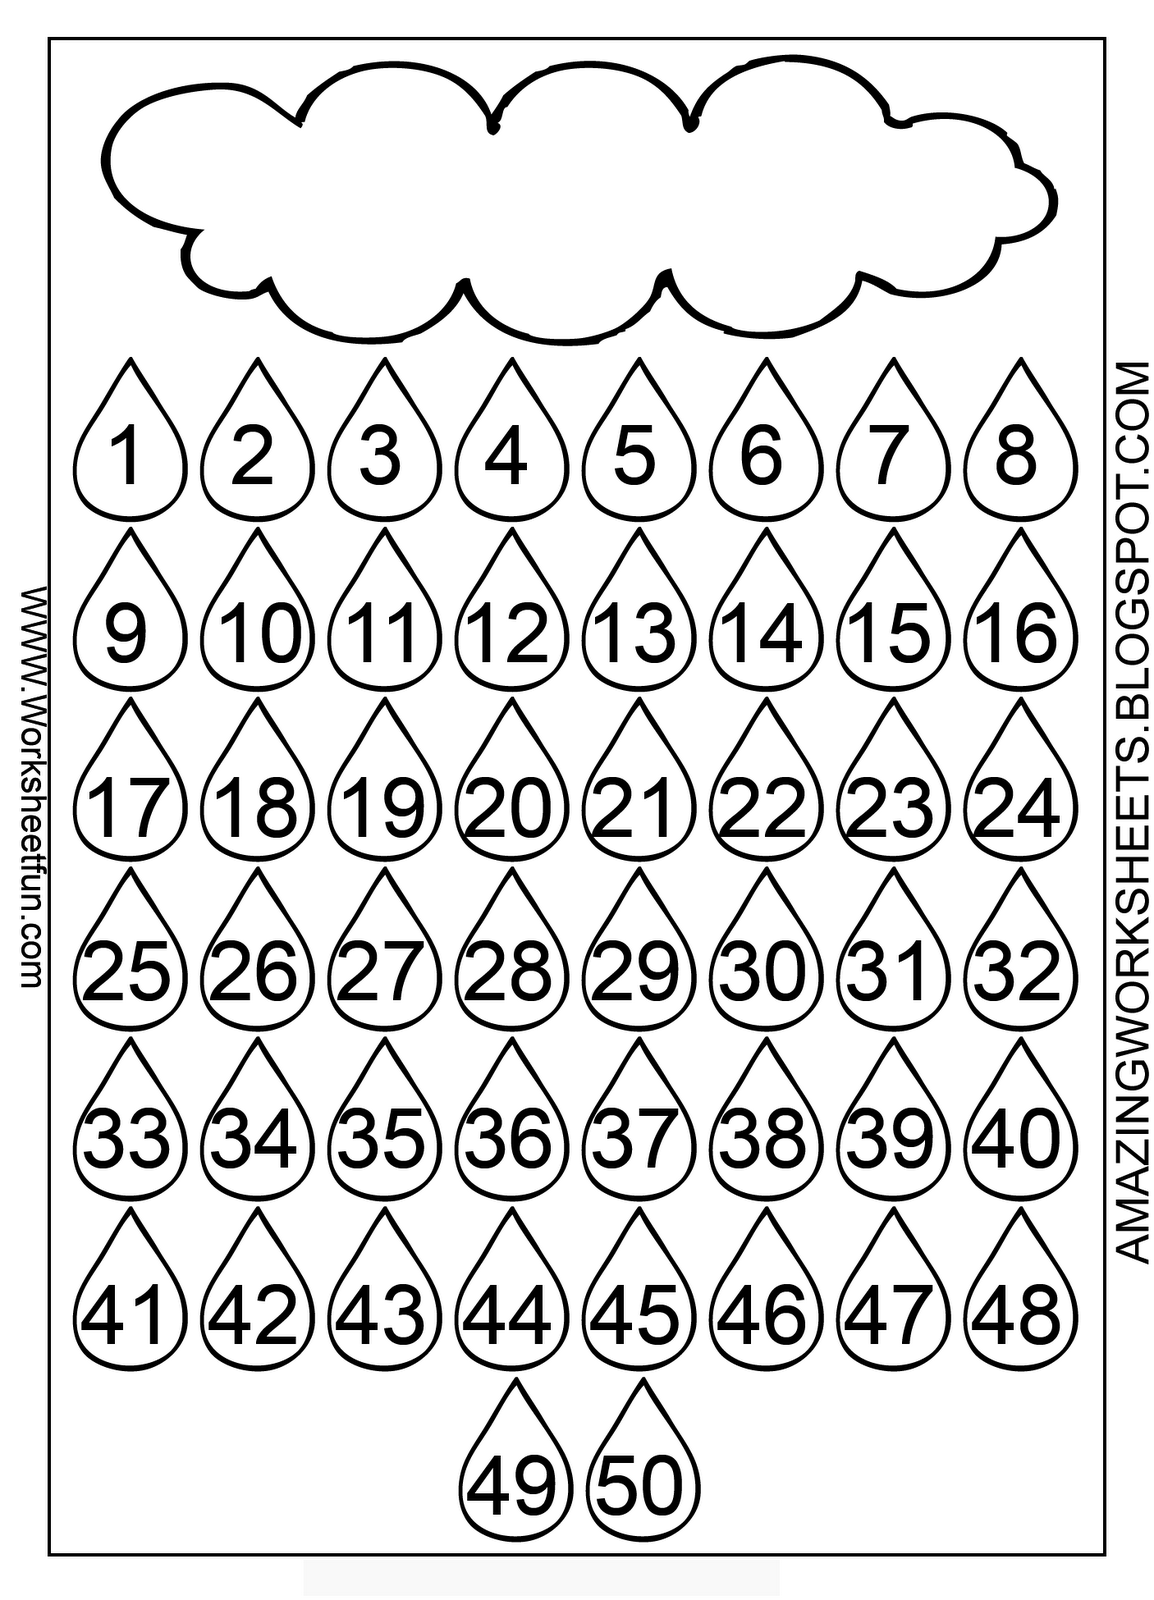 4 Best Images Of Large Printable Number Chart 1 50